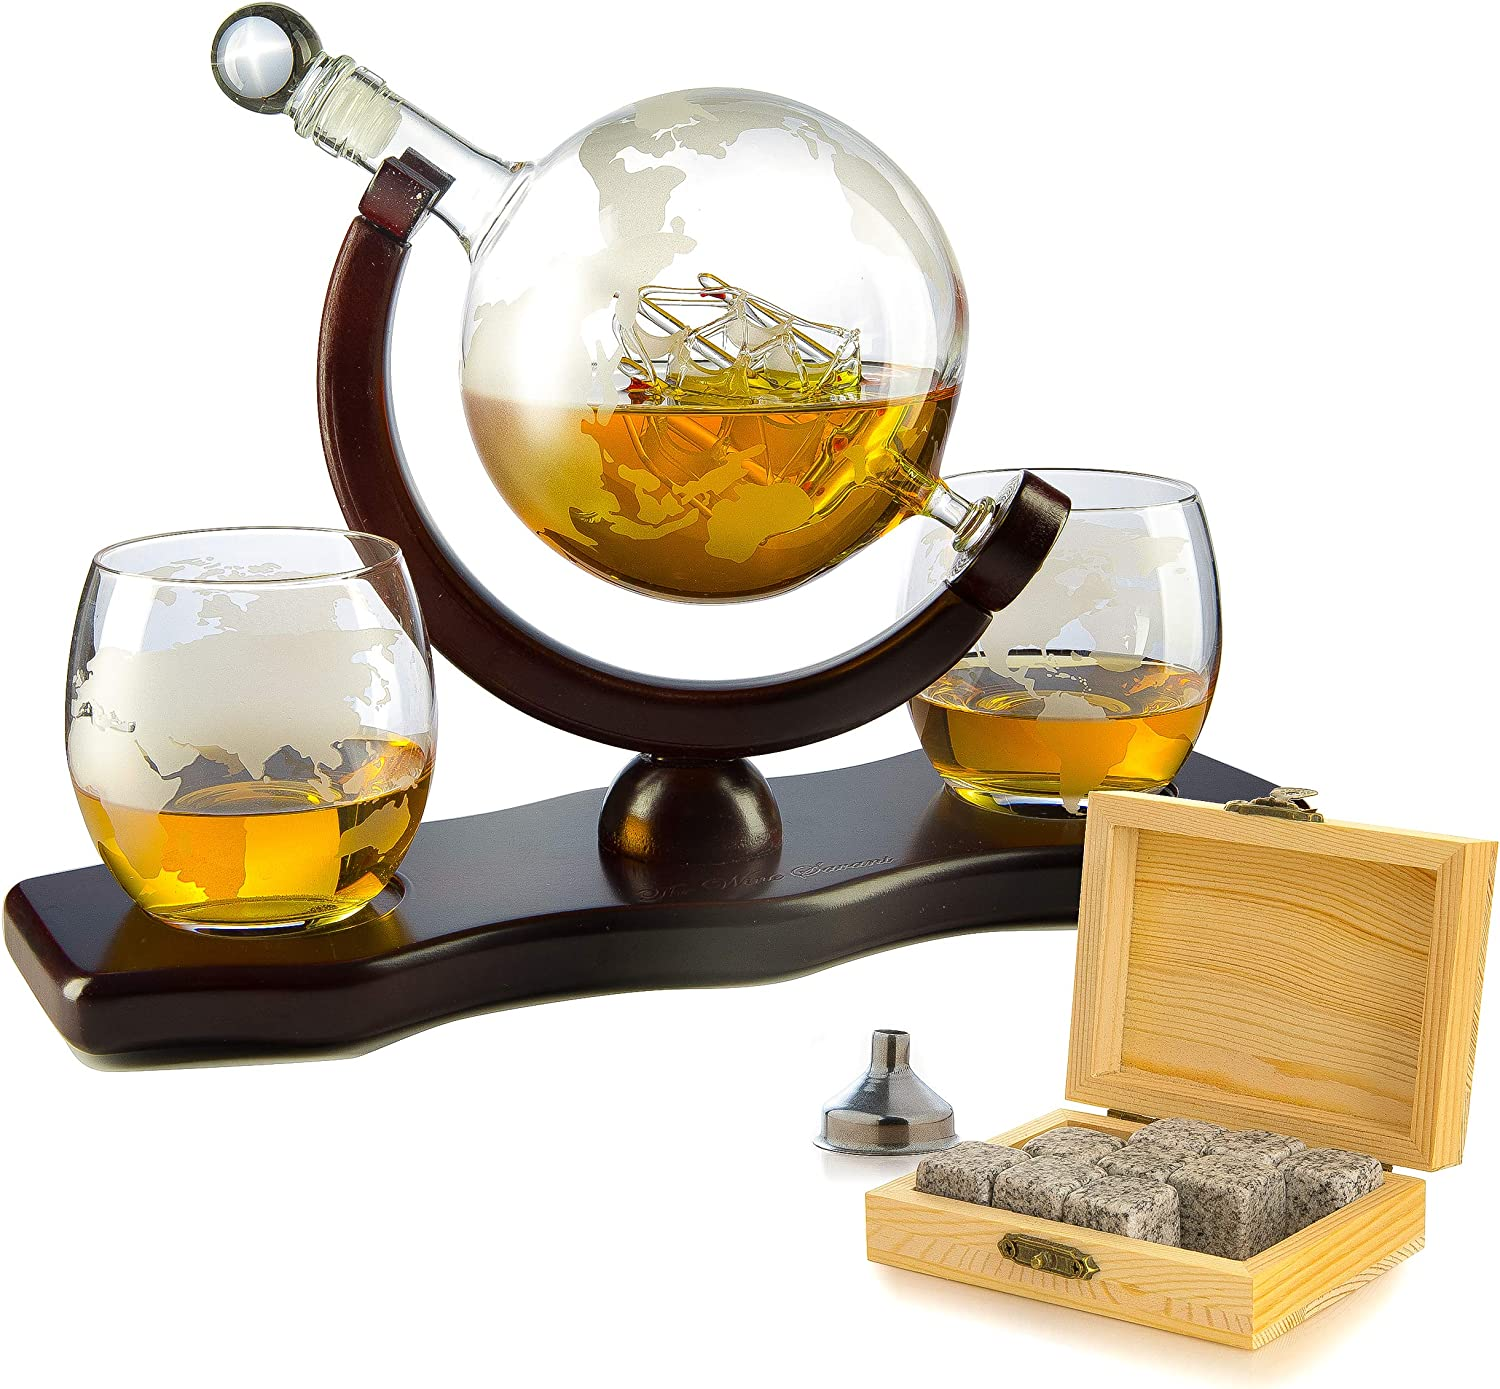 Whiskey Decanter Set Globe With 2 Etched Globe Whisky Glasses Comes With Whiskey Stones For Whiskey Scotch Bourbon 850ml Liquor Decanters